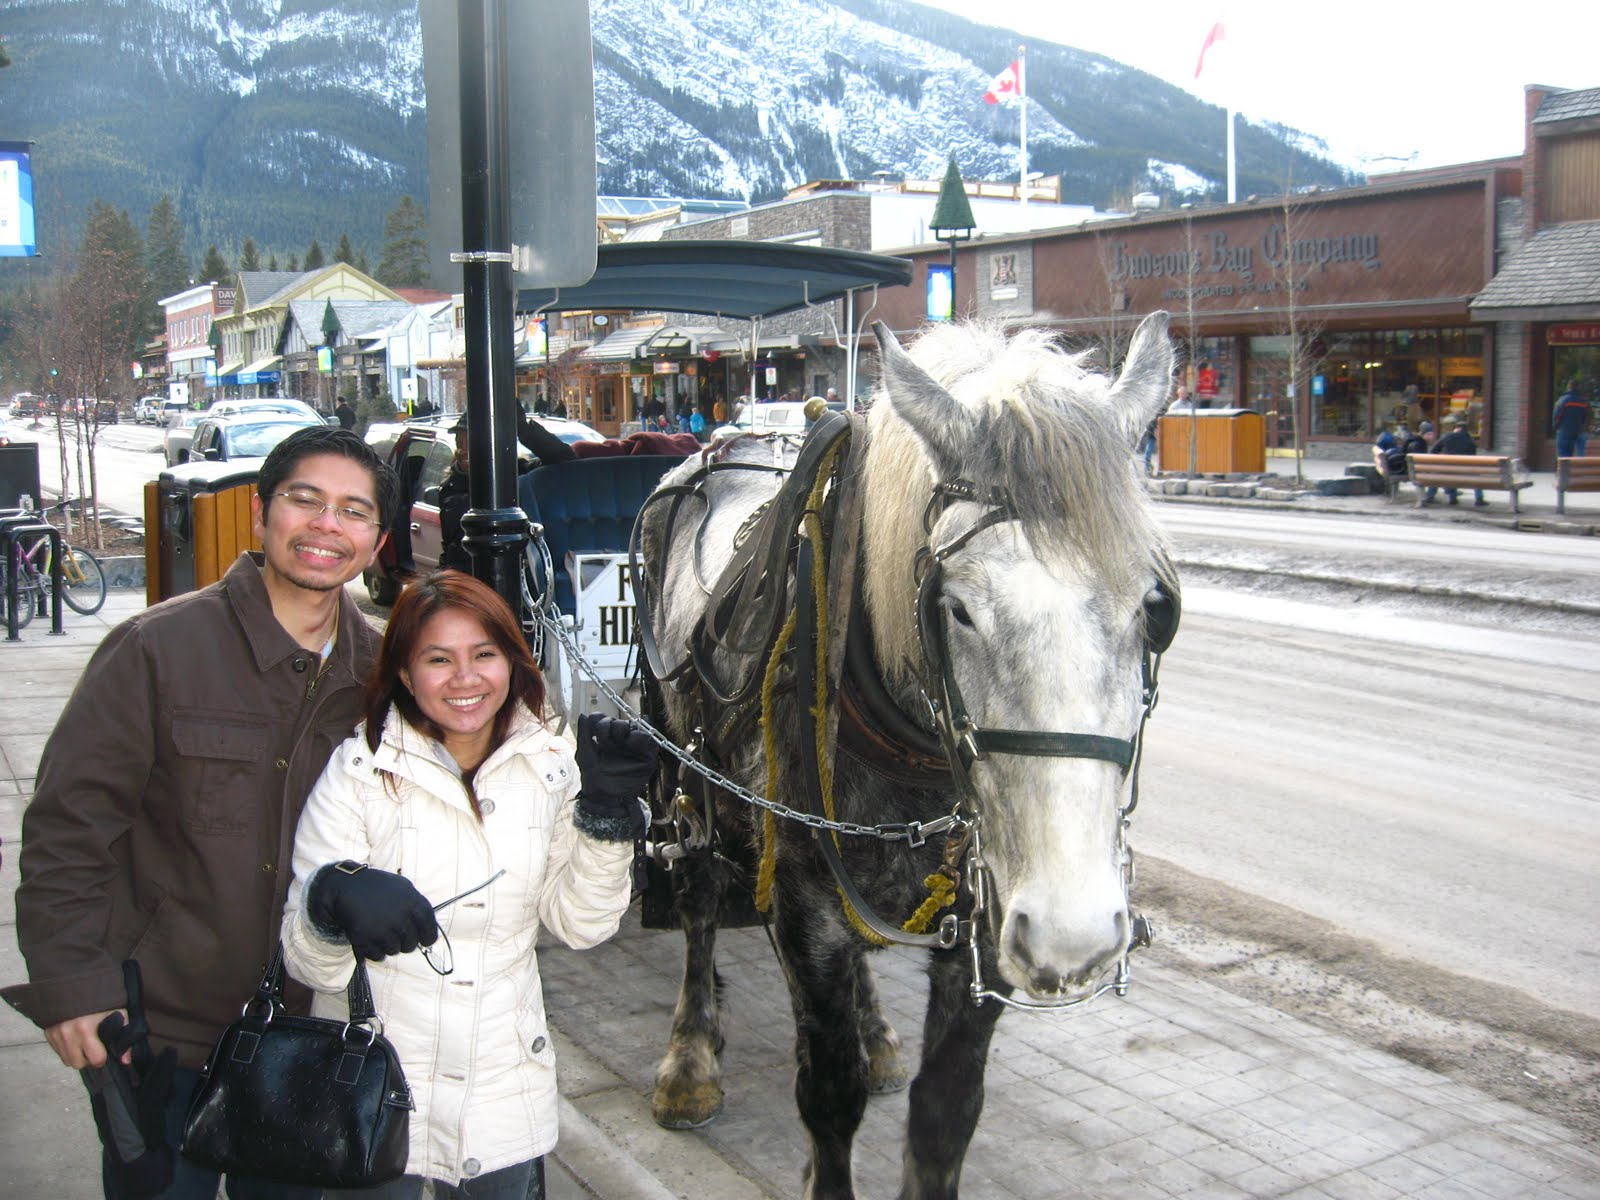 Romantic ideas for married couples in calgary romantic for Couple weekend getaway ideas